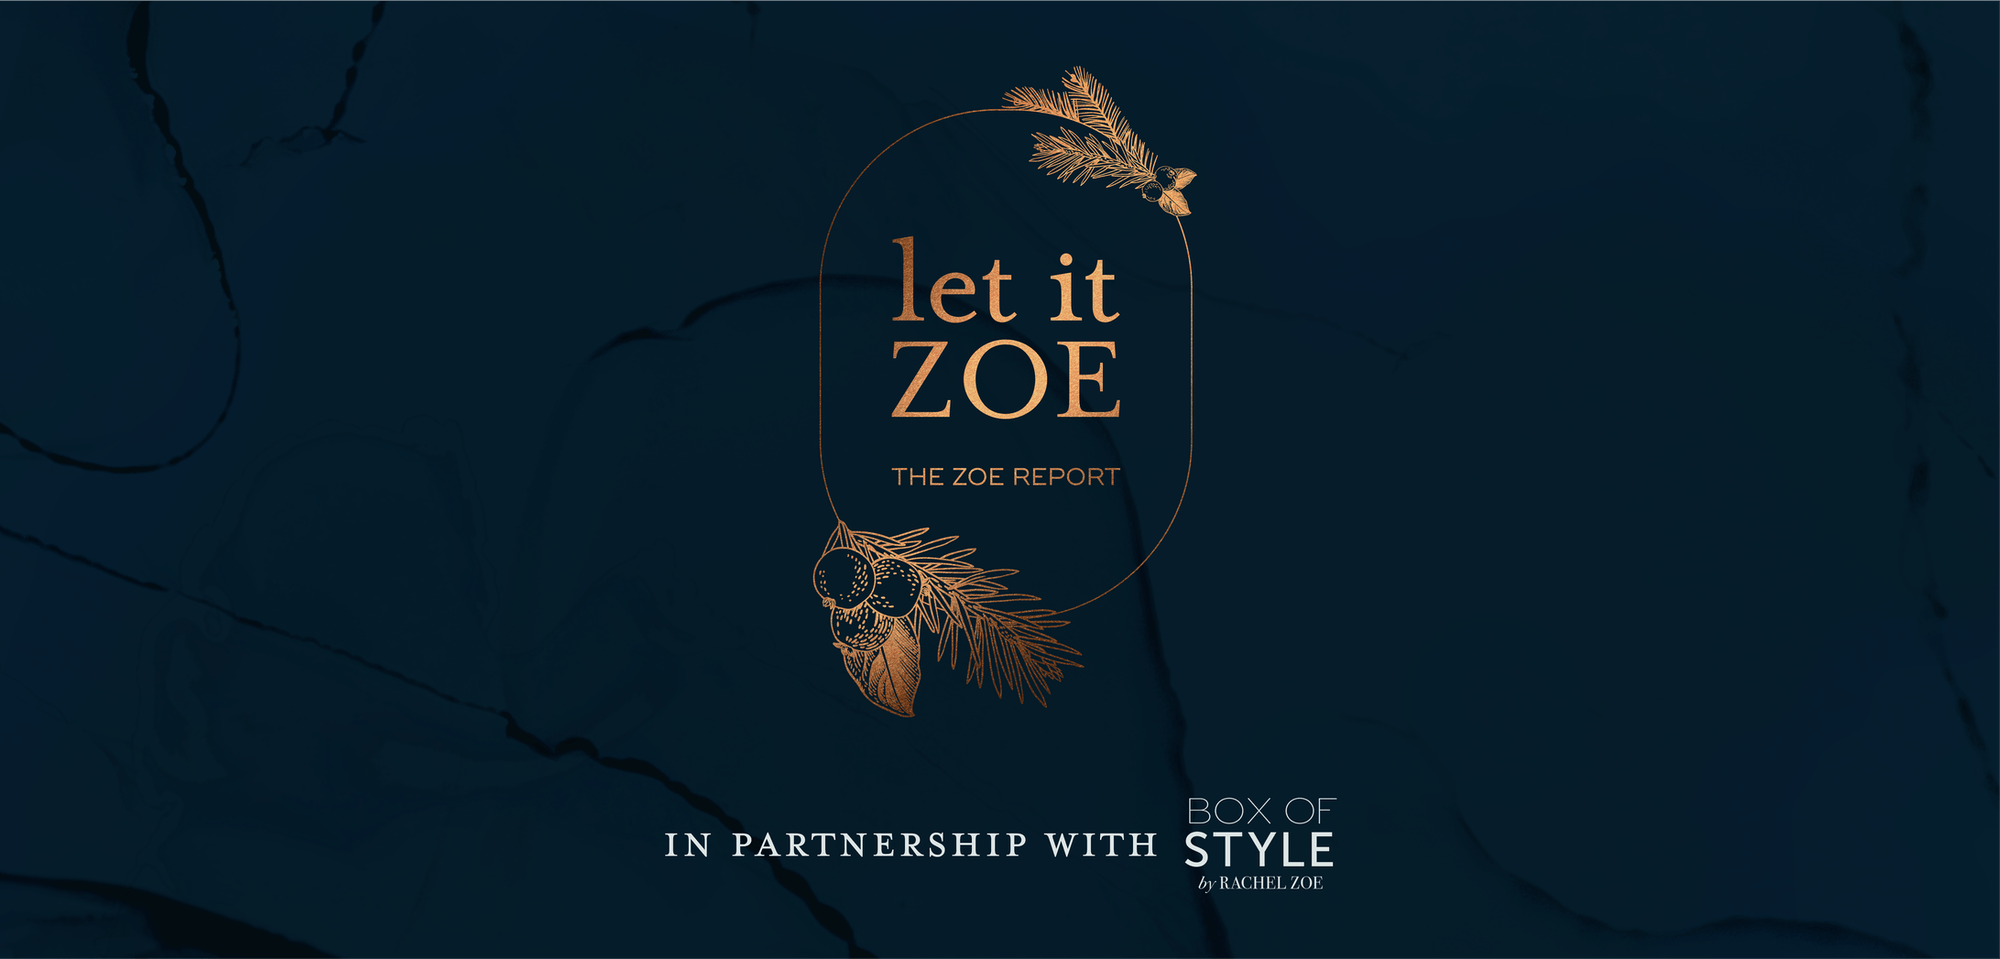 Let It Zoe presented by The Zoe Report in partnership with Box of Style by Rachel Zoe